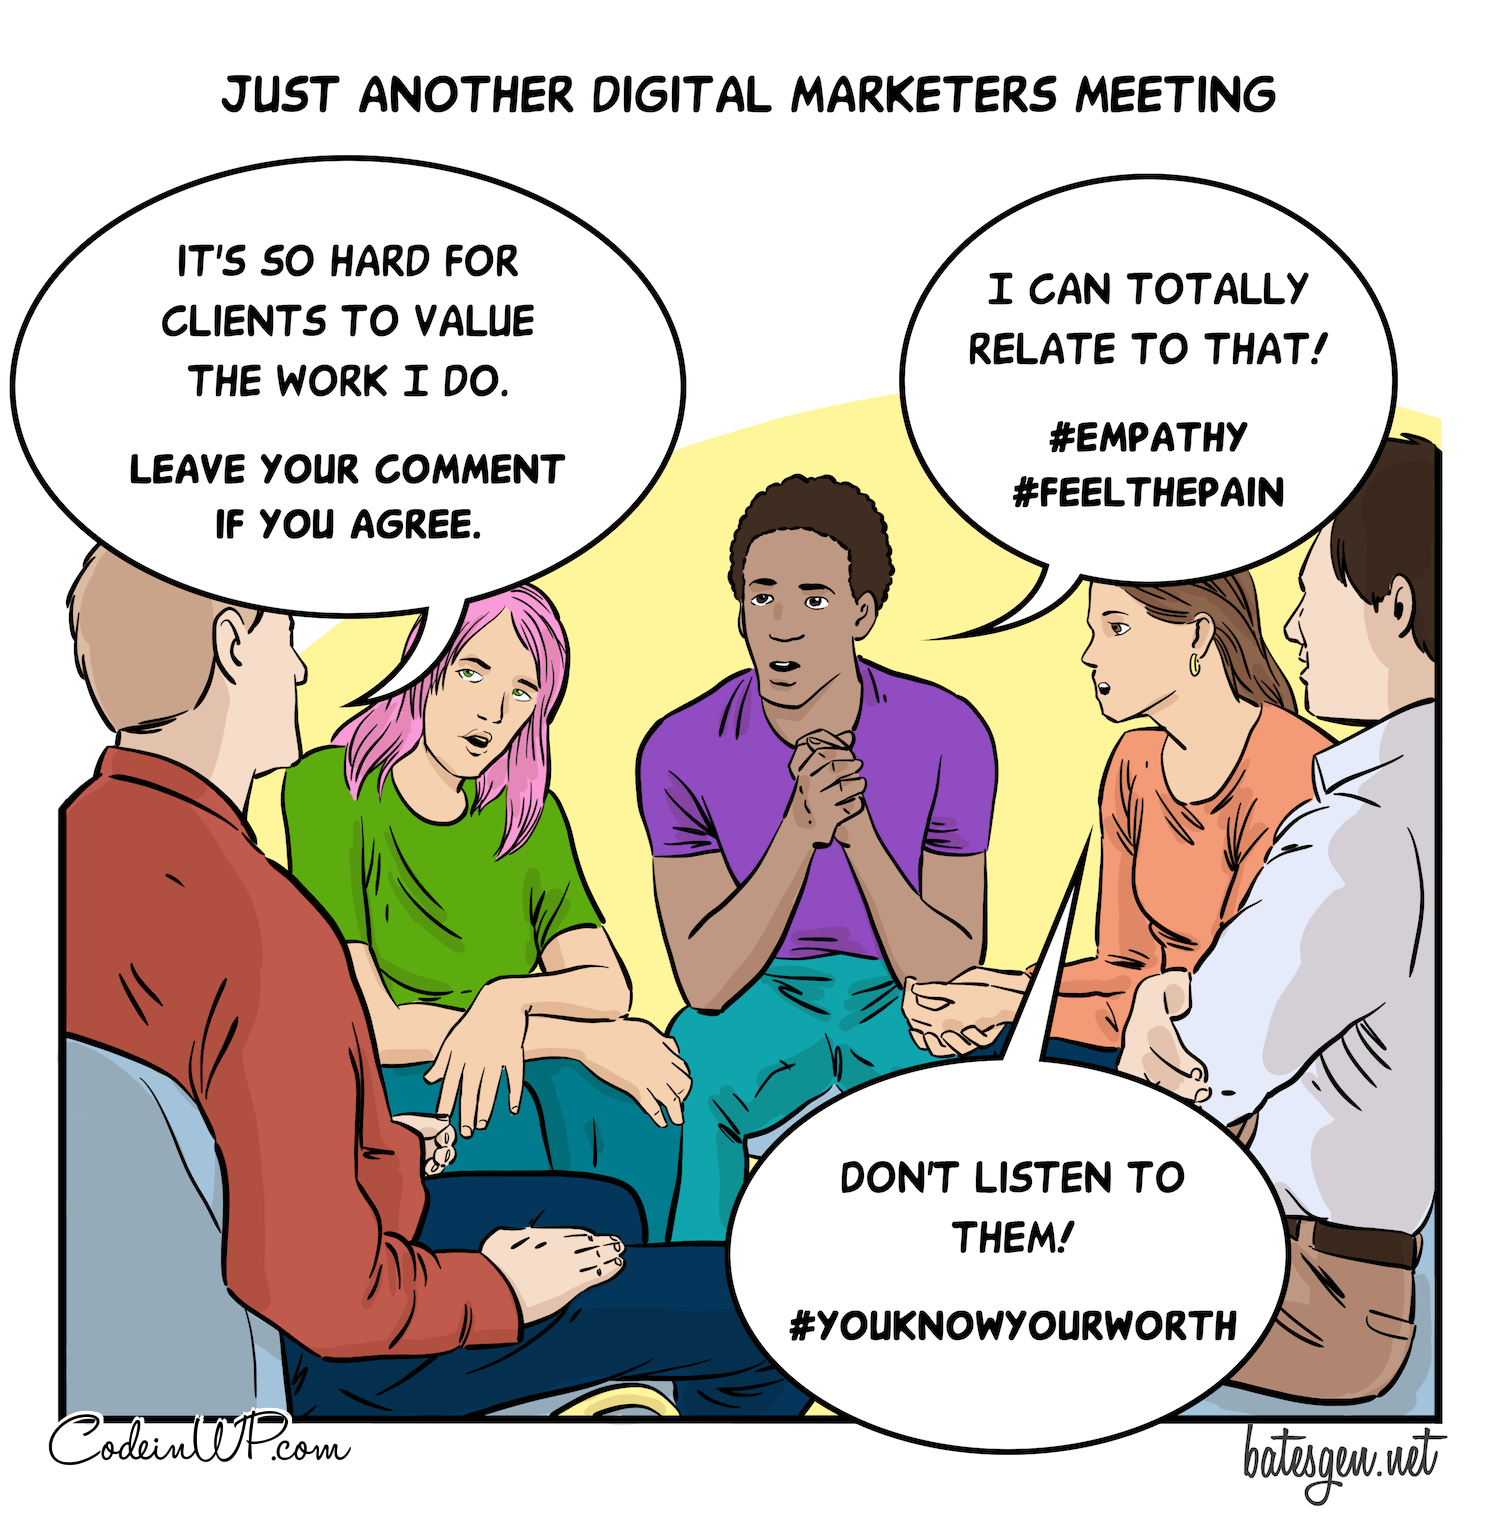 Digital marketers expressing support in their own way